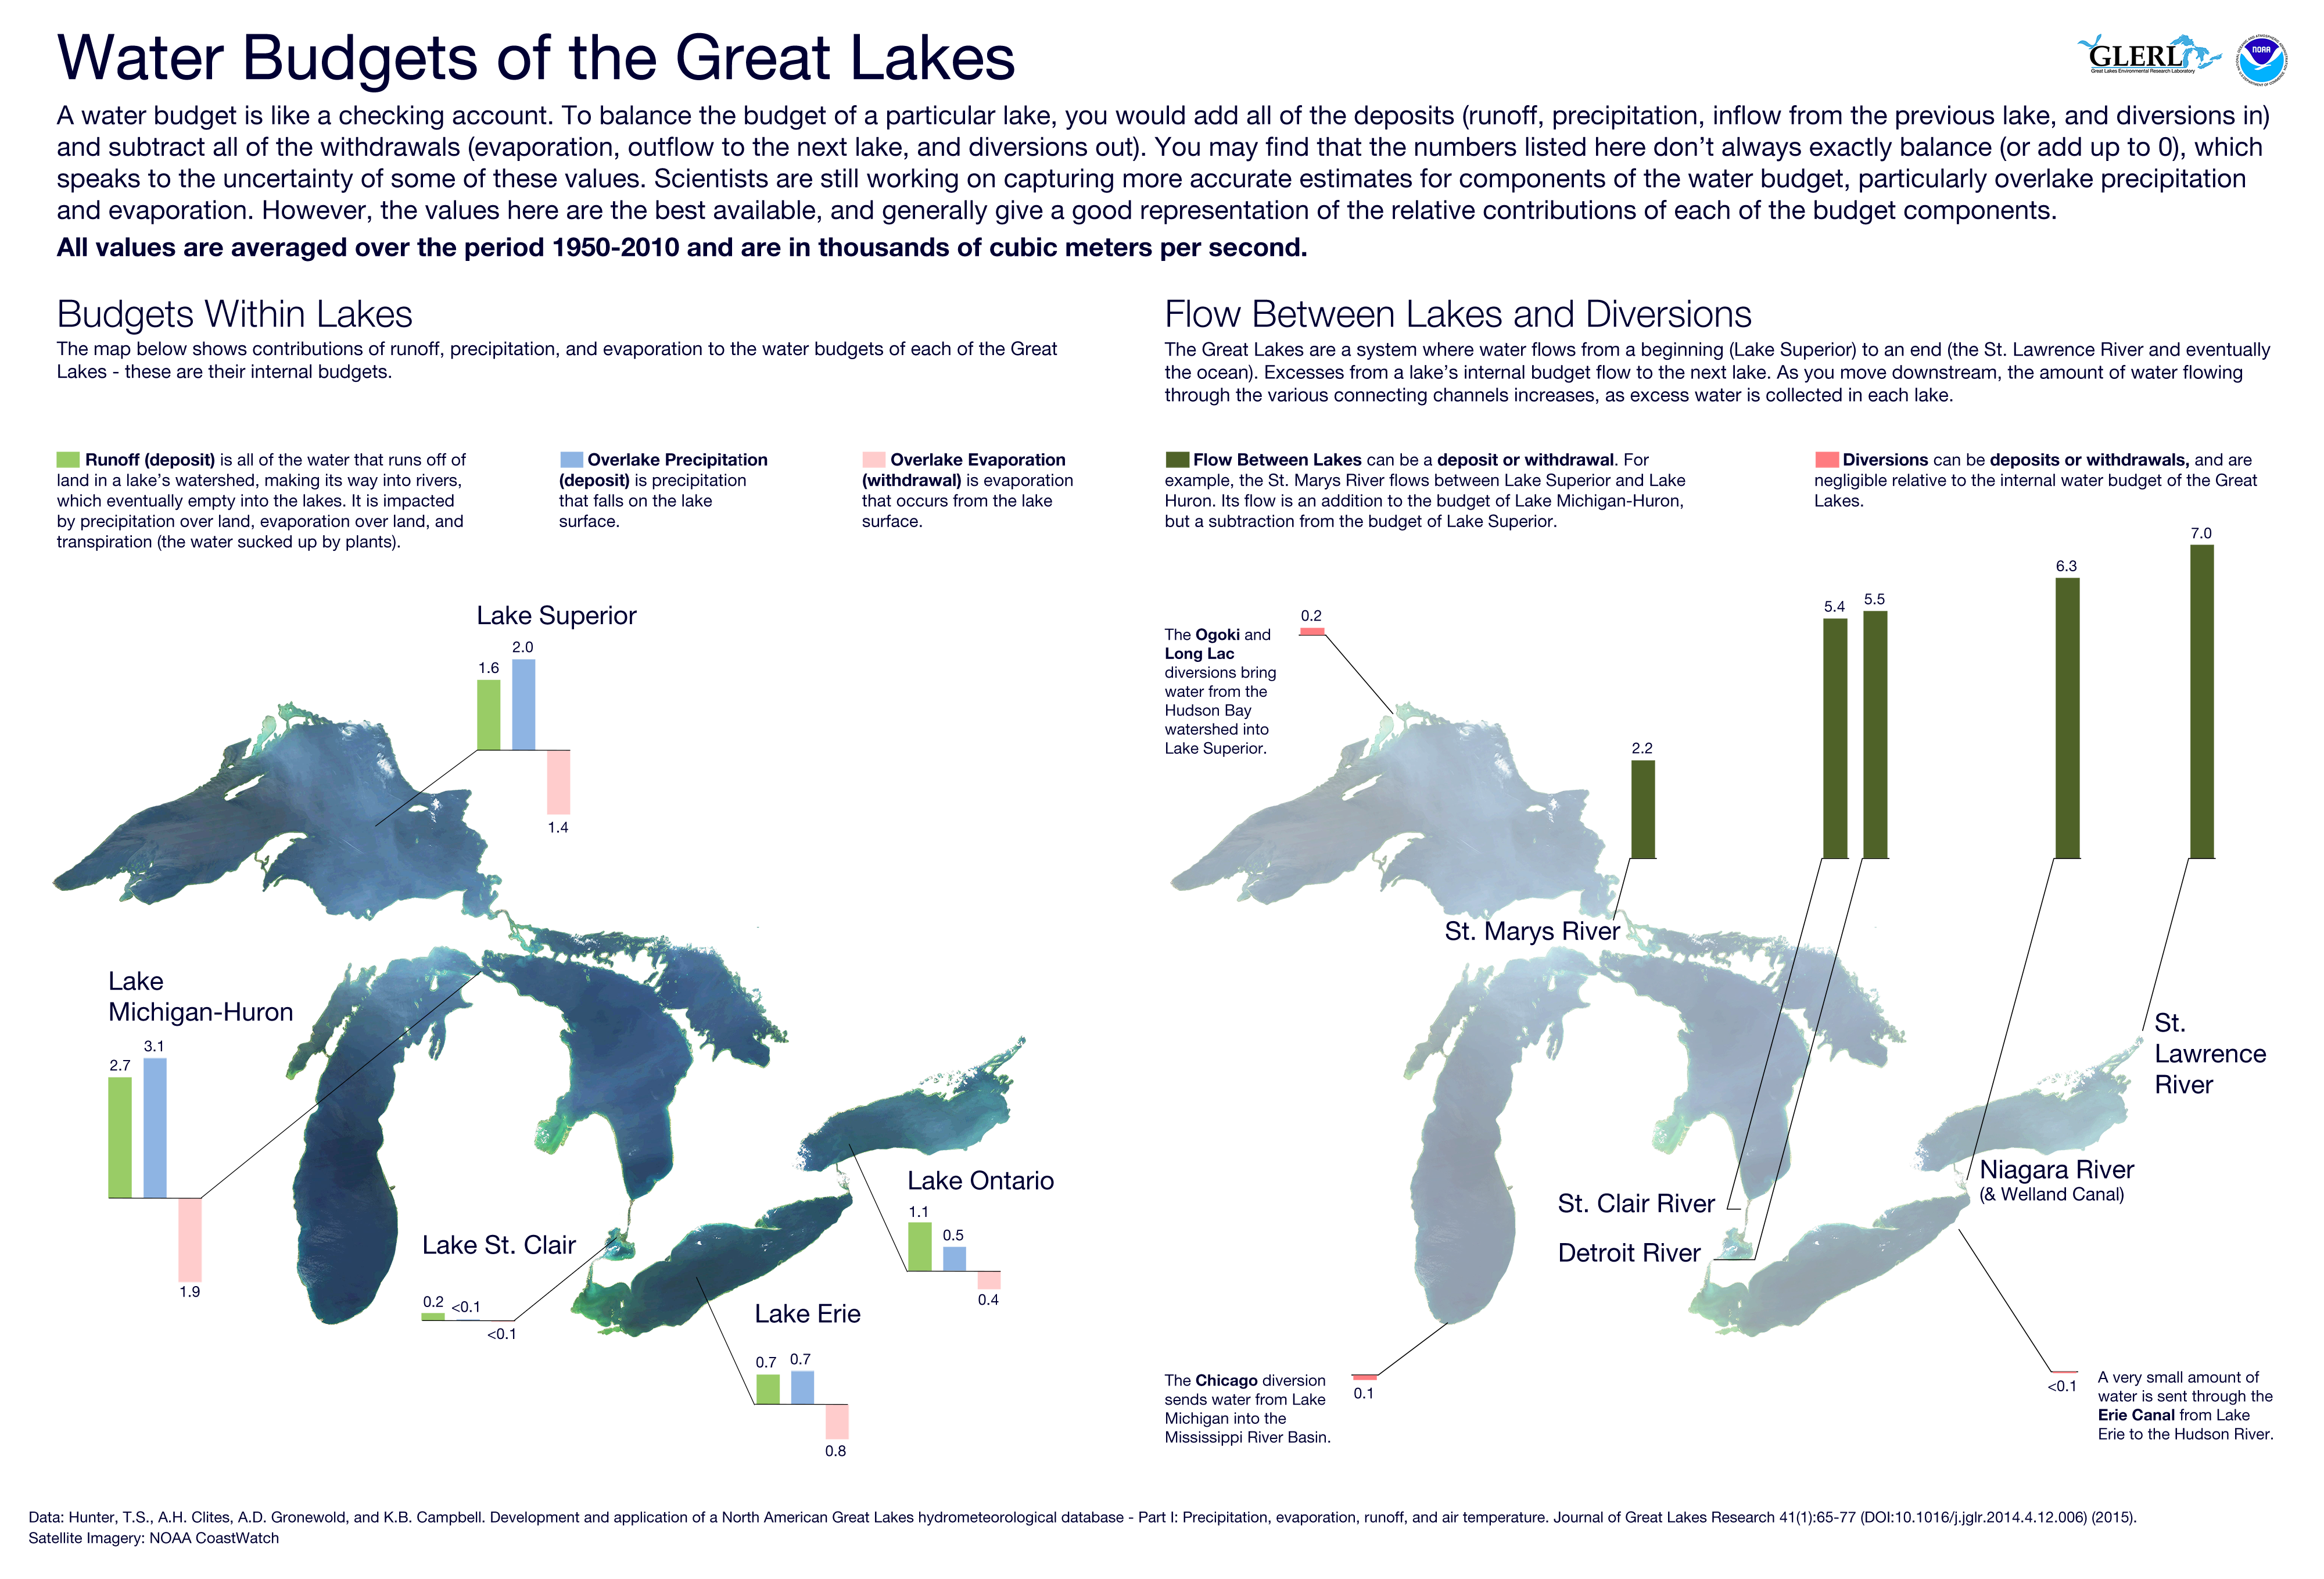 Image depicting the makeup of water budgets in the Great Lakes